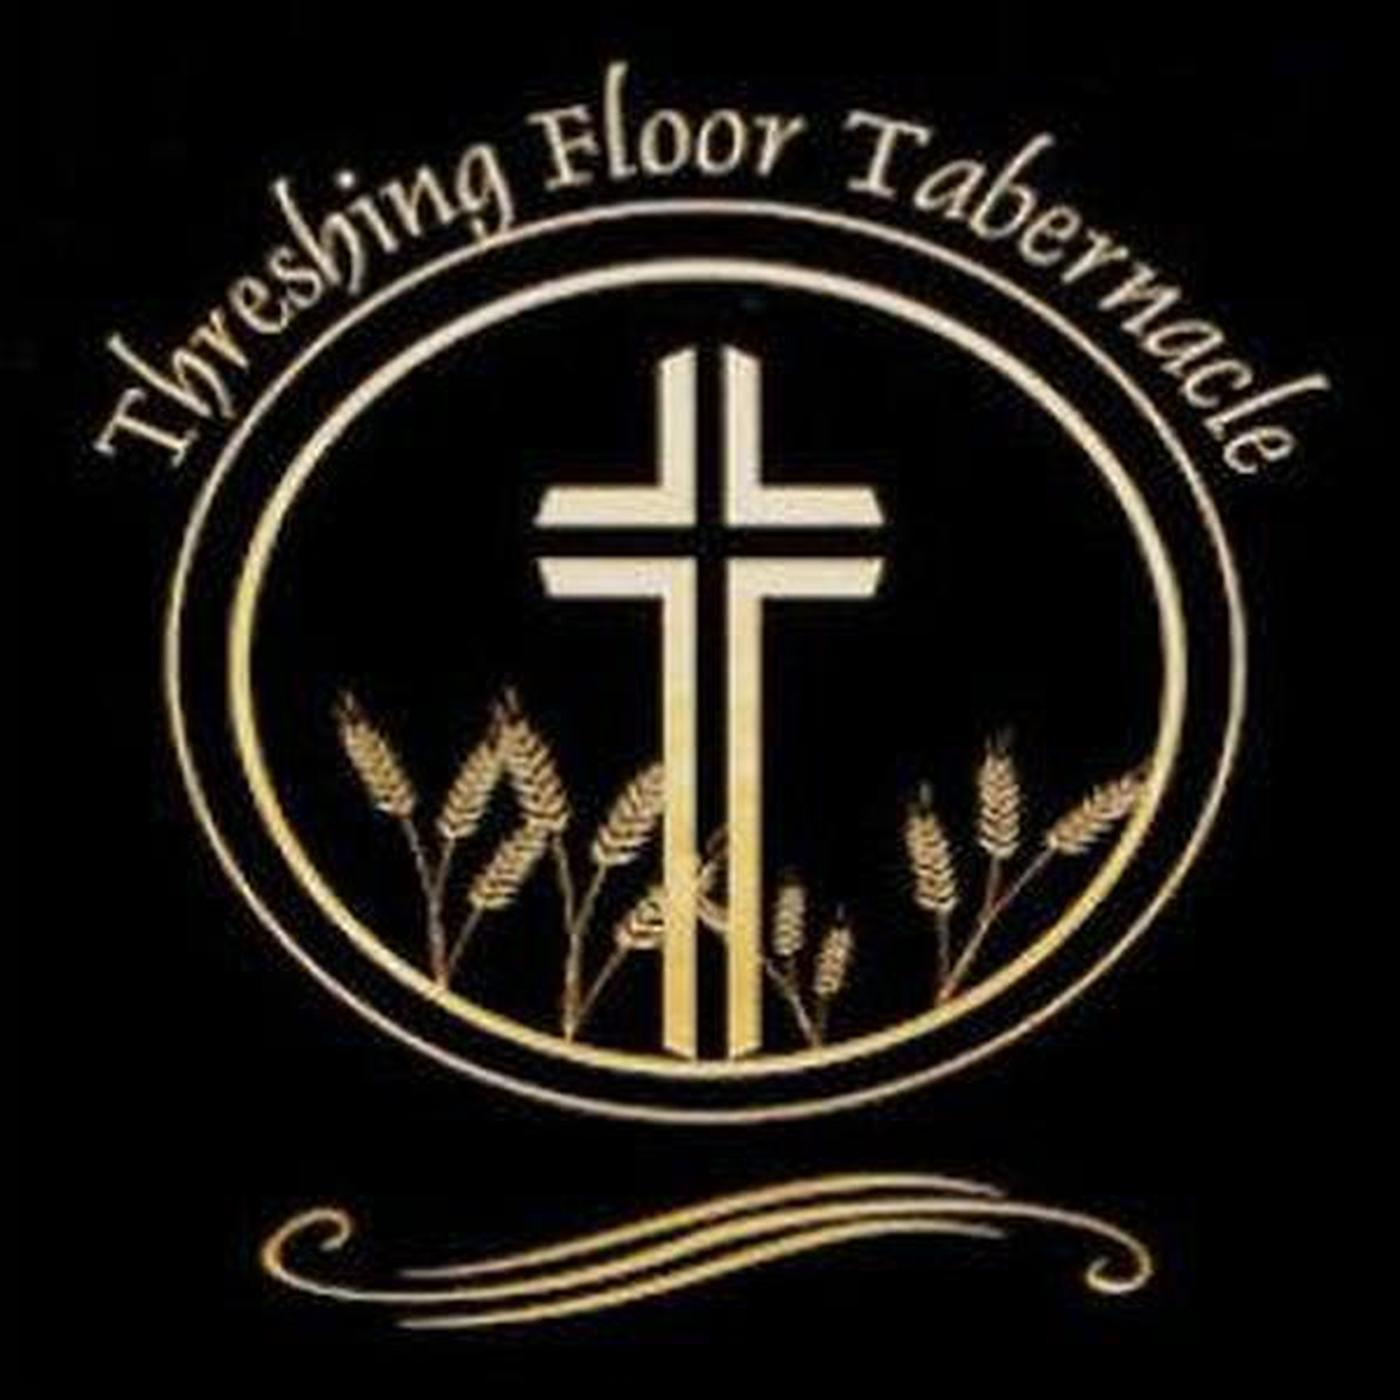 Threshing Floor Tabernacle